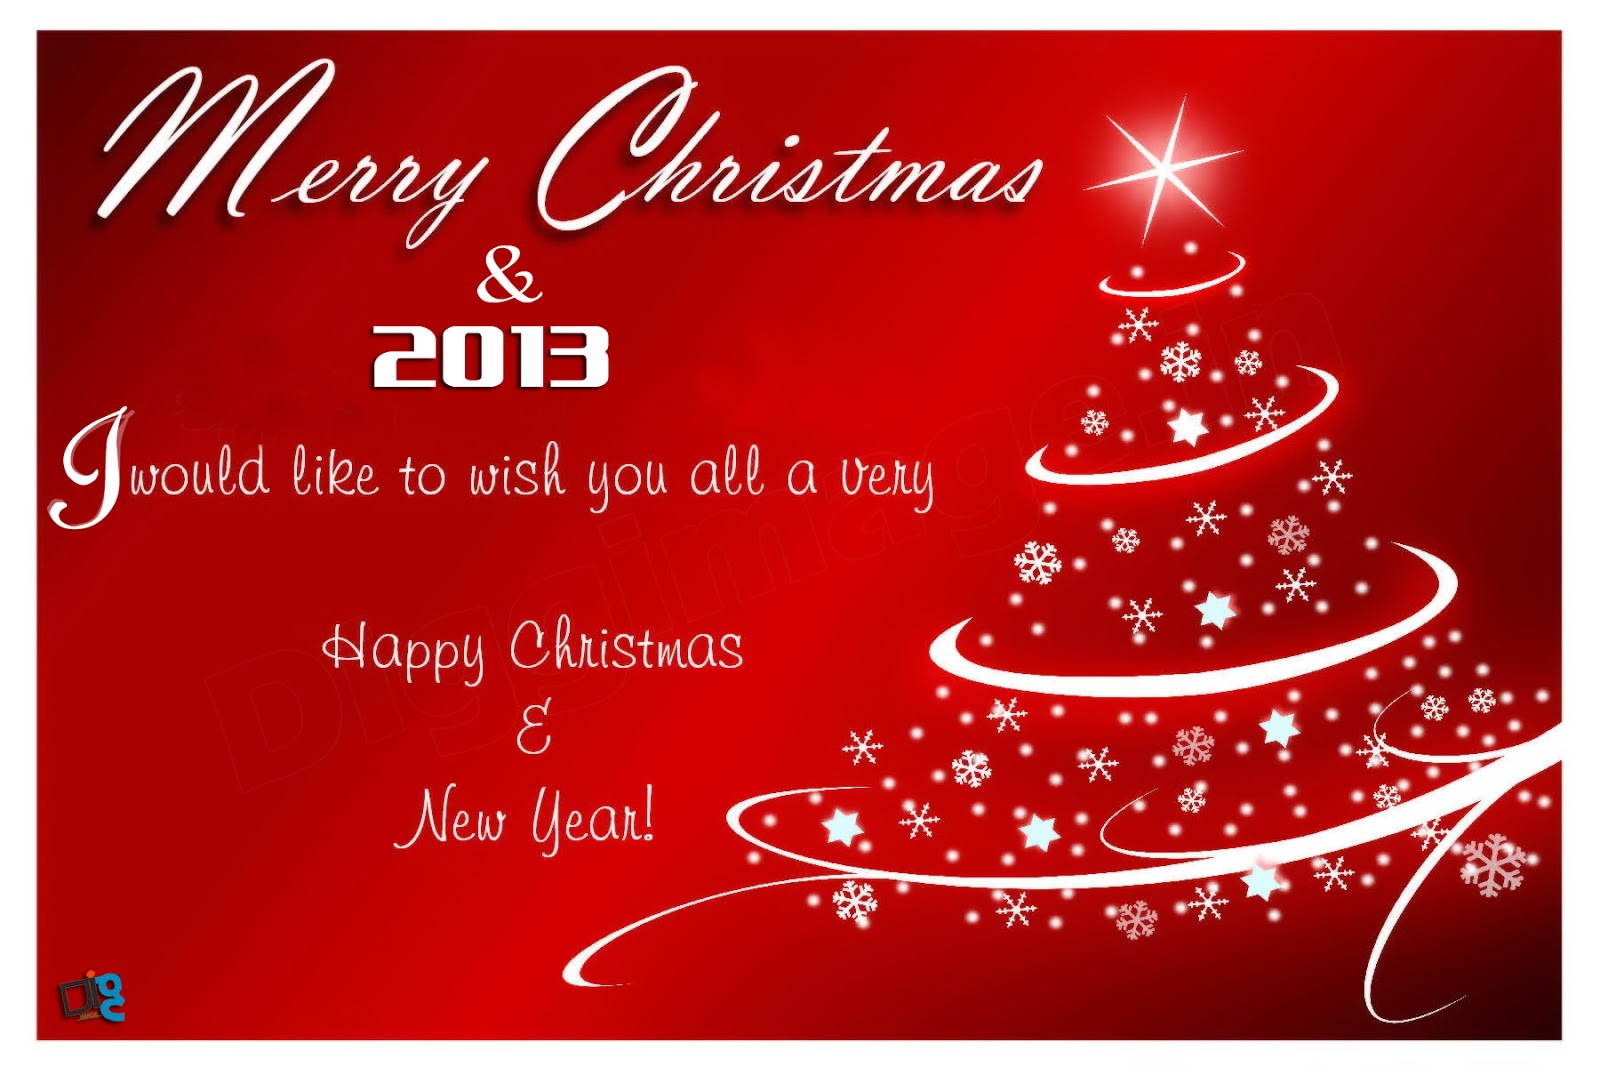 Familychristmasgreetingsandwallpapersnadhappynewyear2013JPG. 1600 x 1067.Greeting For New Year In Hindi